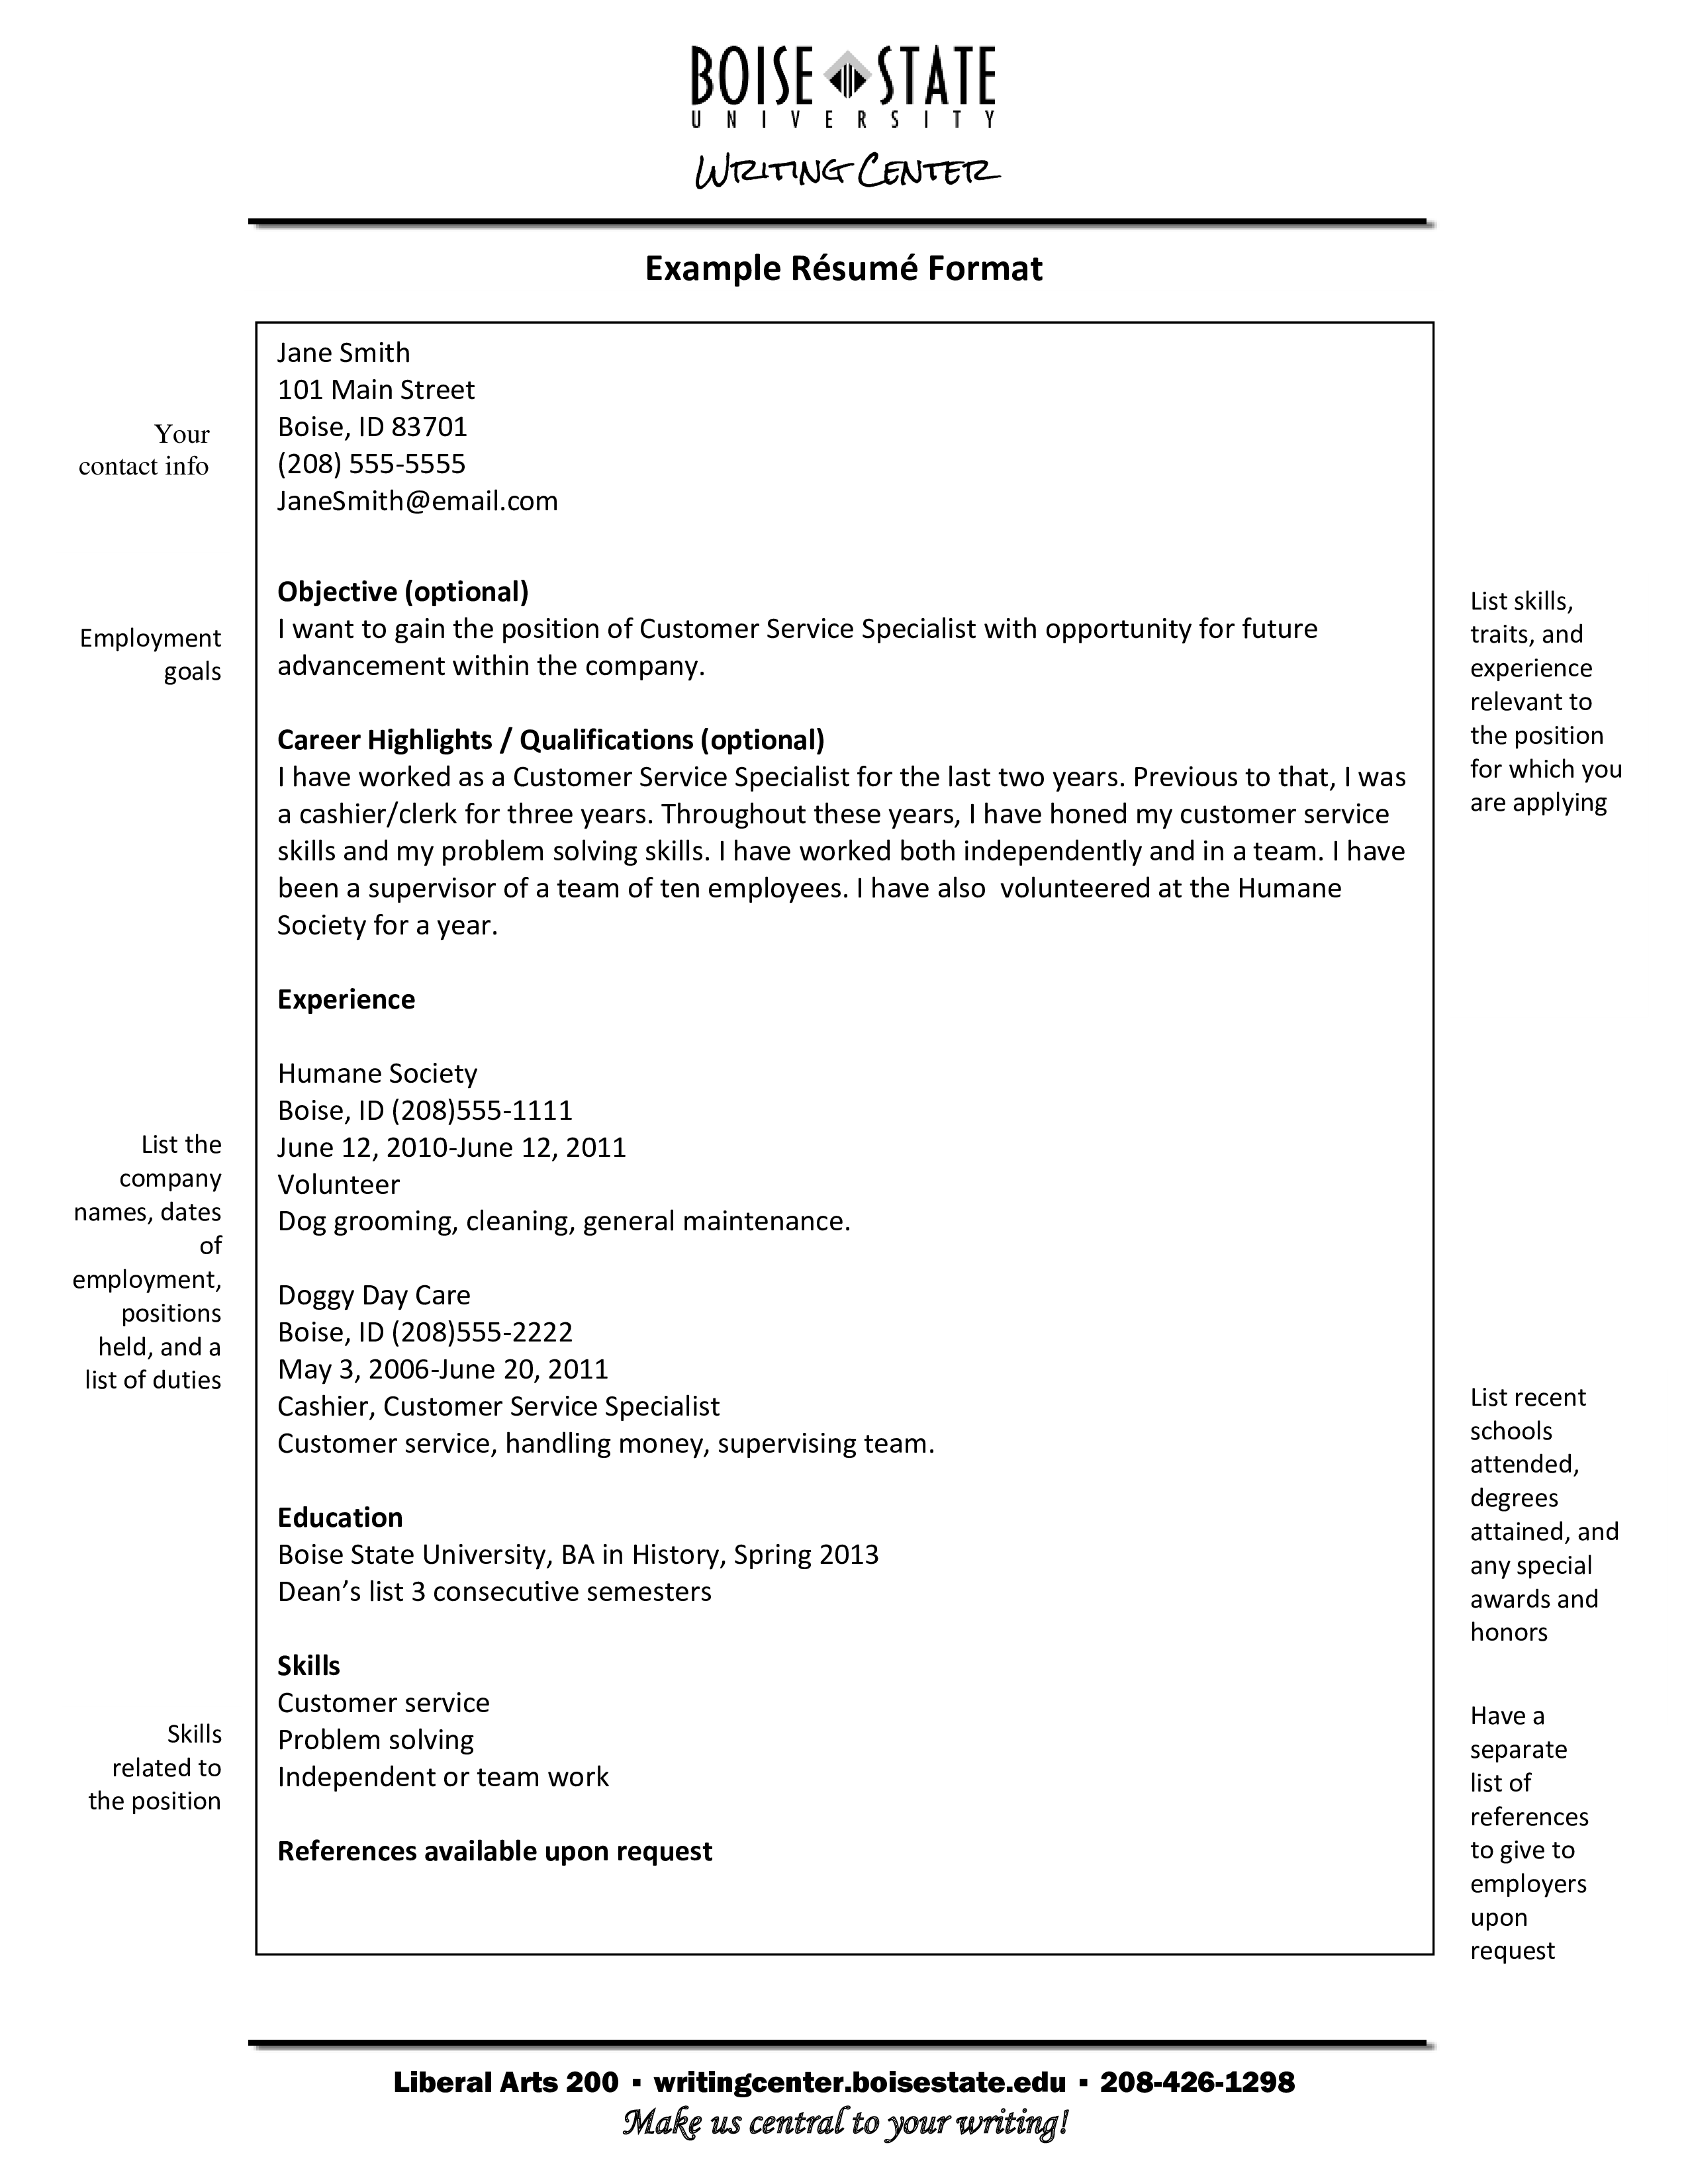 Printable Sample Resume Format Templates At Allbusinesstemplates Com